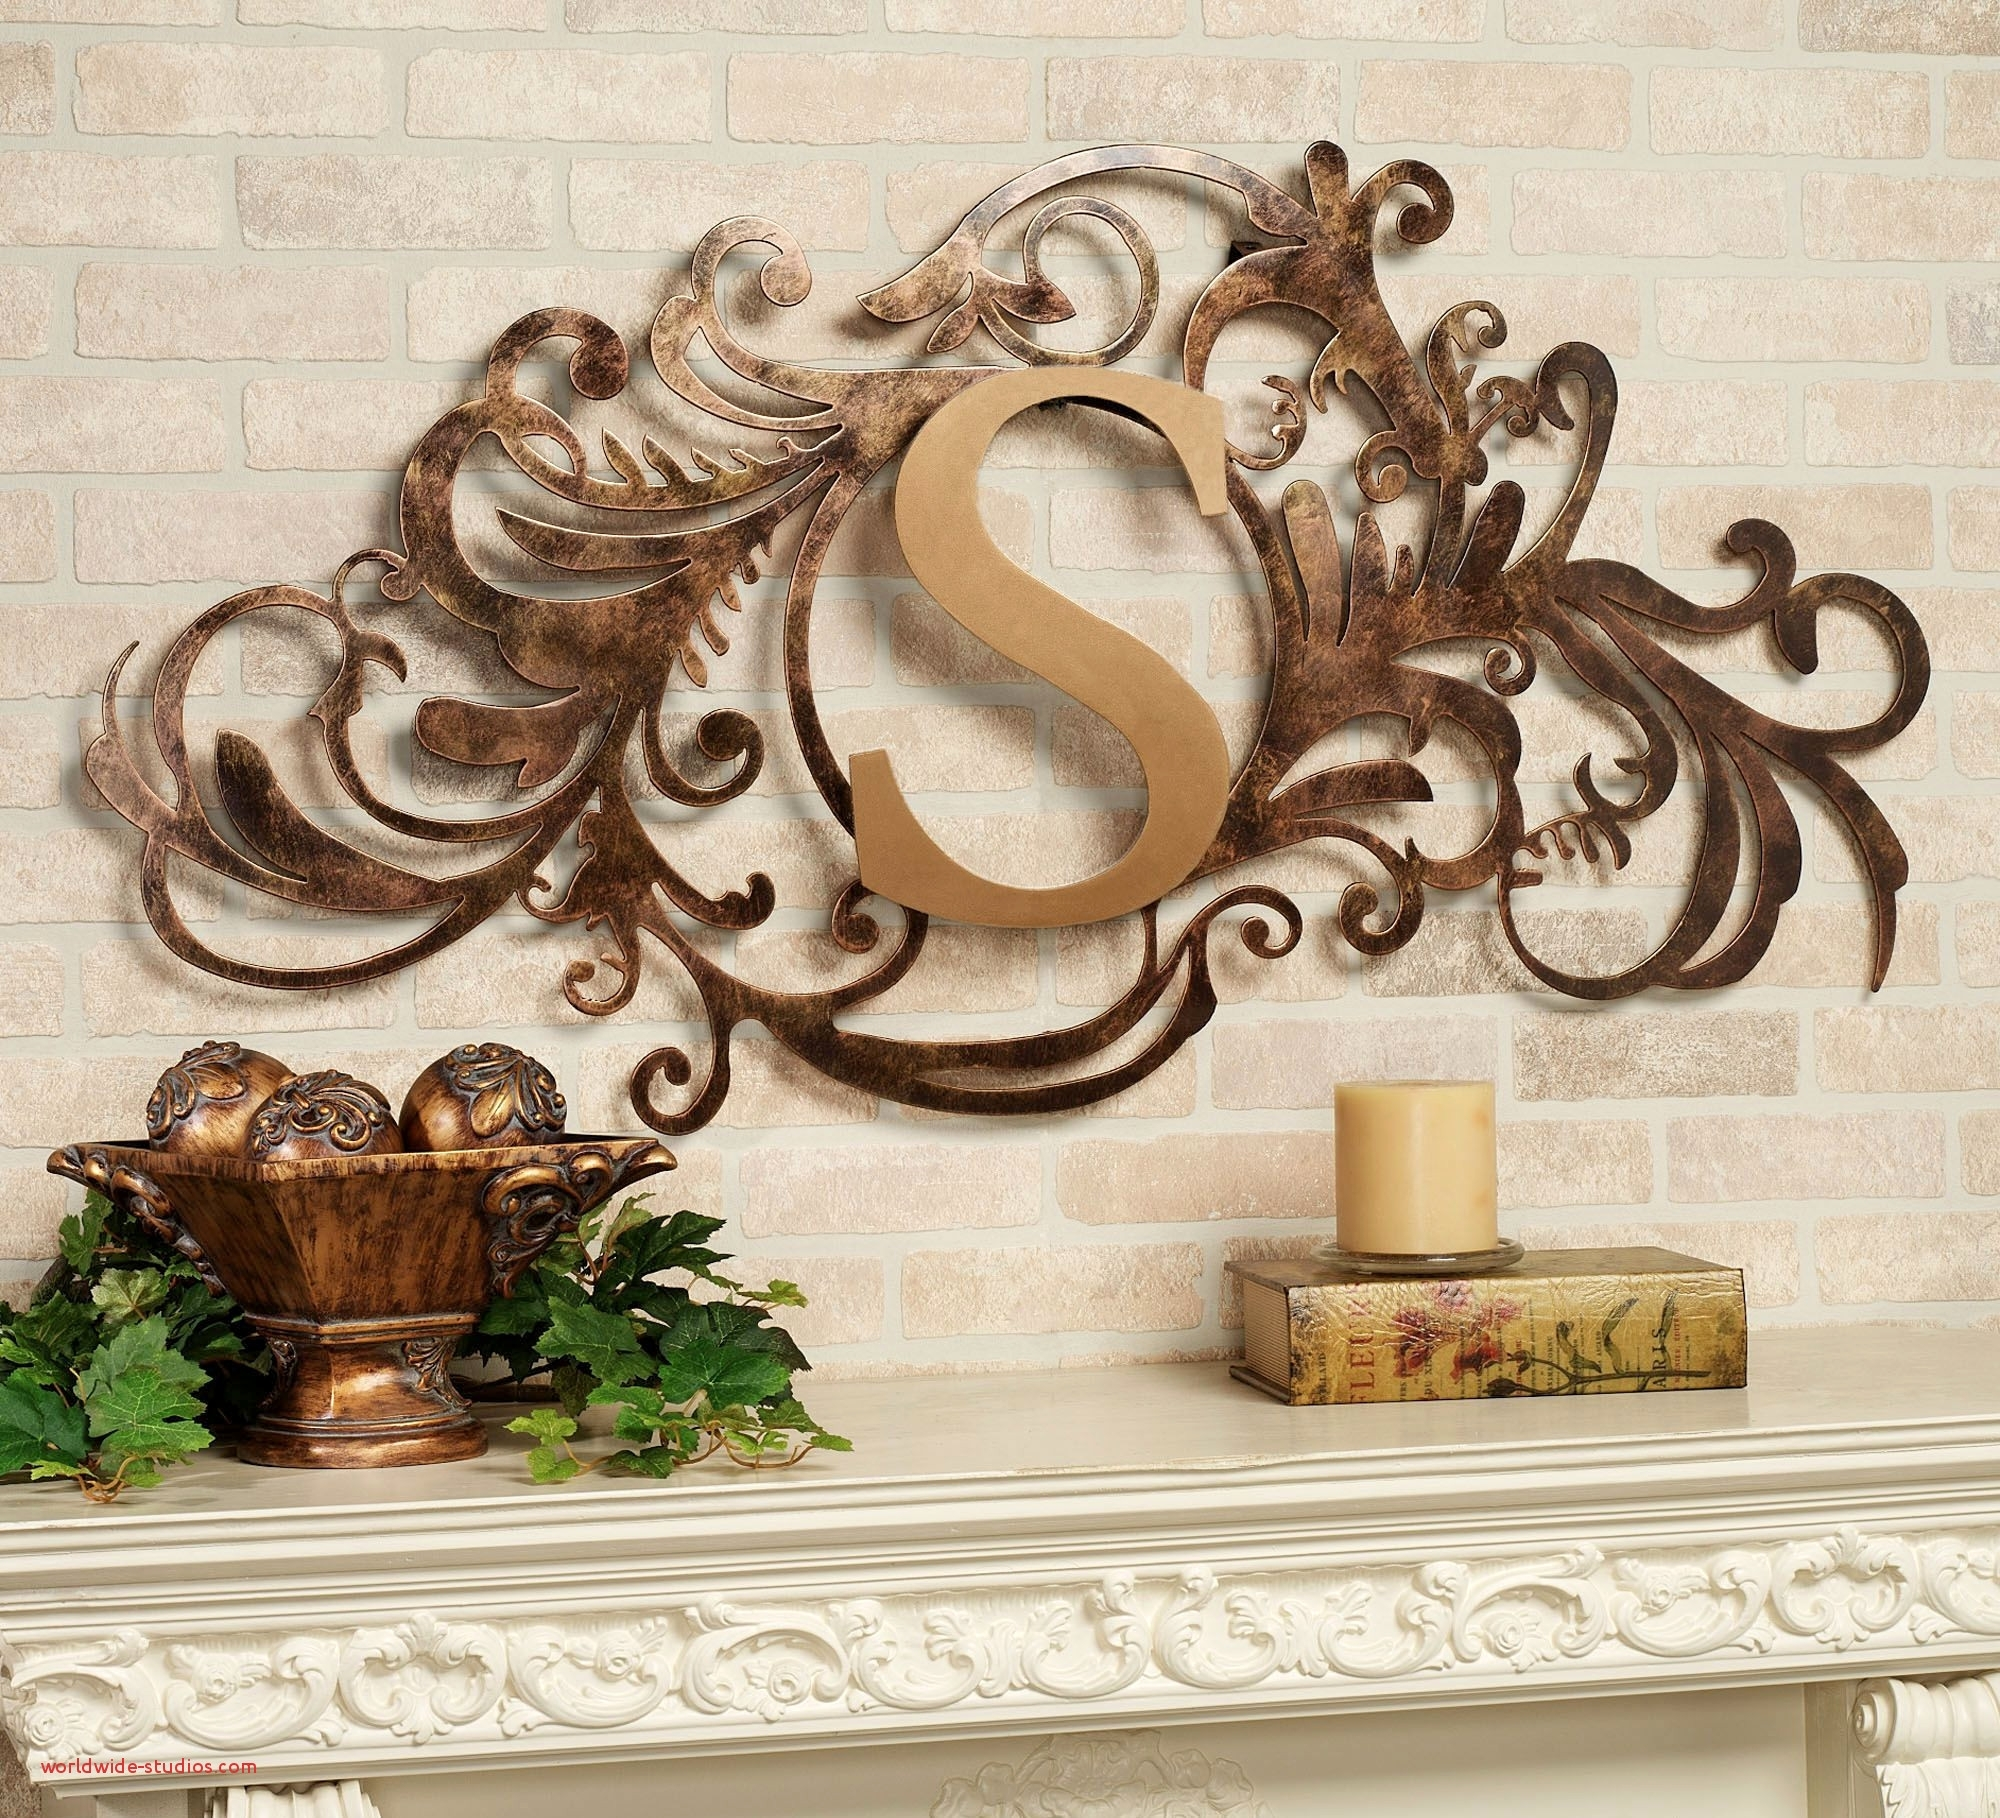 Top Result Diy Monogram Wall Decor Fresh Sightly Nursery Decor Intended For Recent Monogram Wall Art (View 17 of 20)